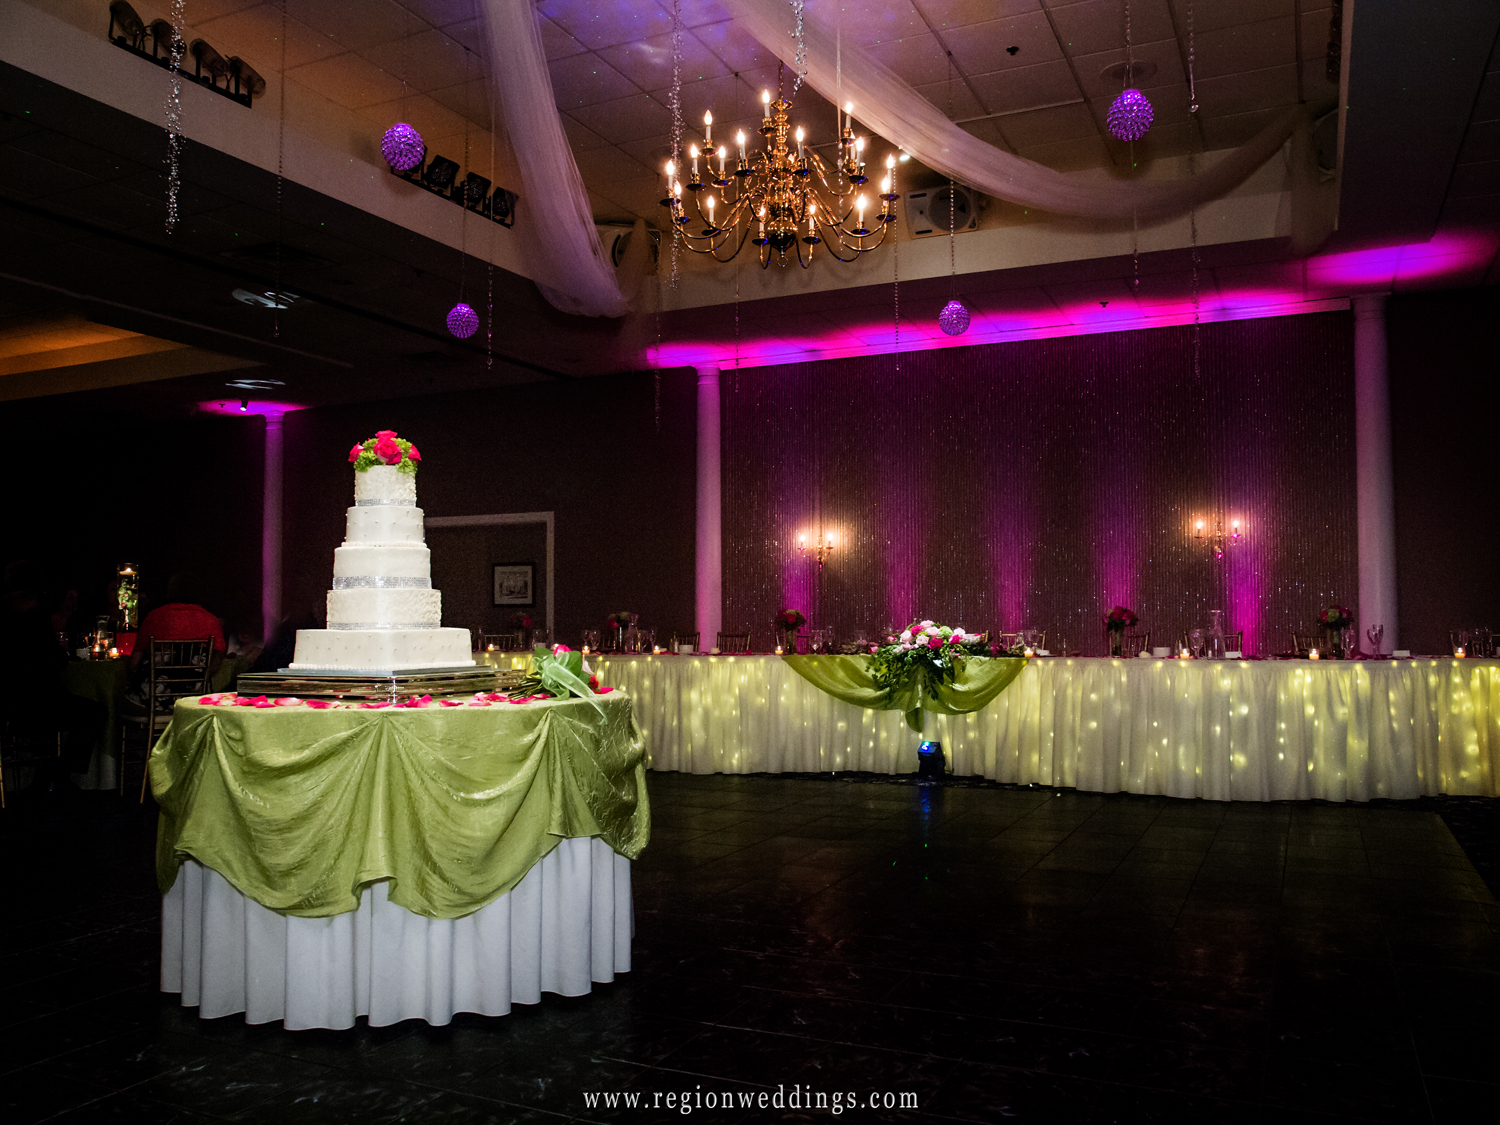 A gorgeous wedding cake with a pink topper sits inside the ballroom at Aberdeen Manor in Valparaiso, Indiana.